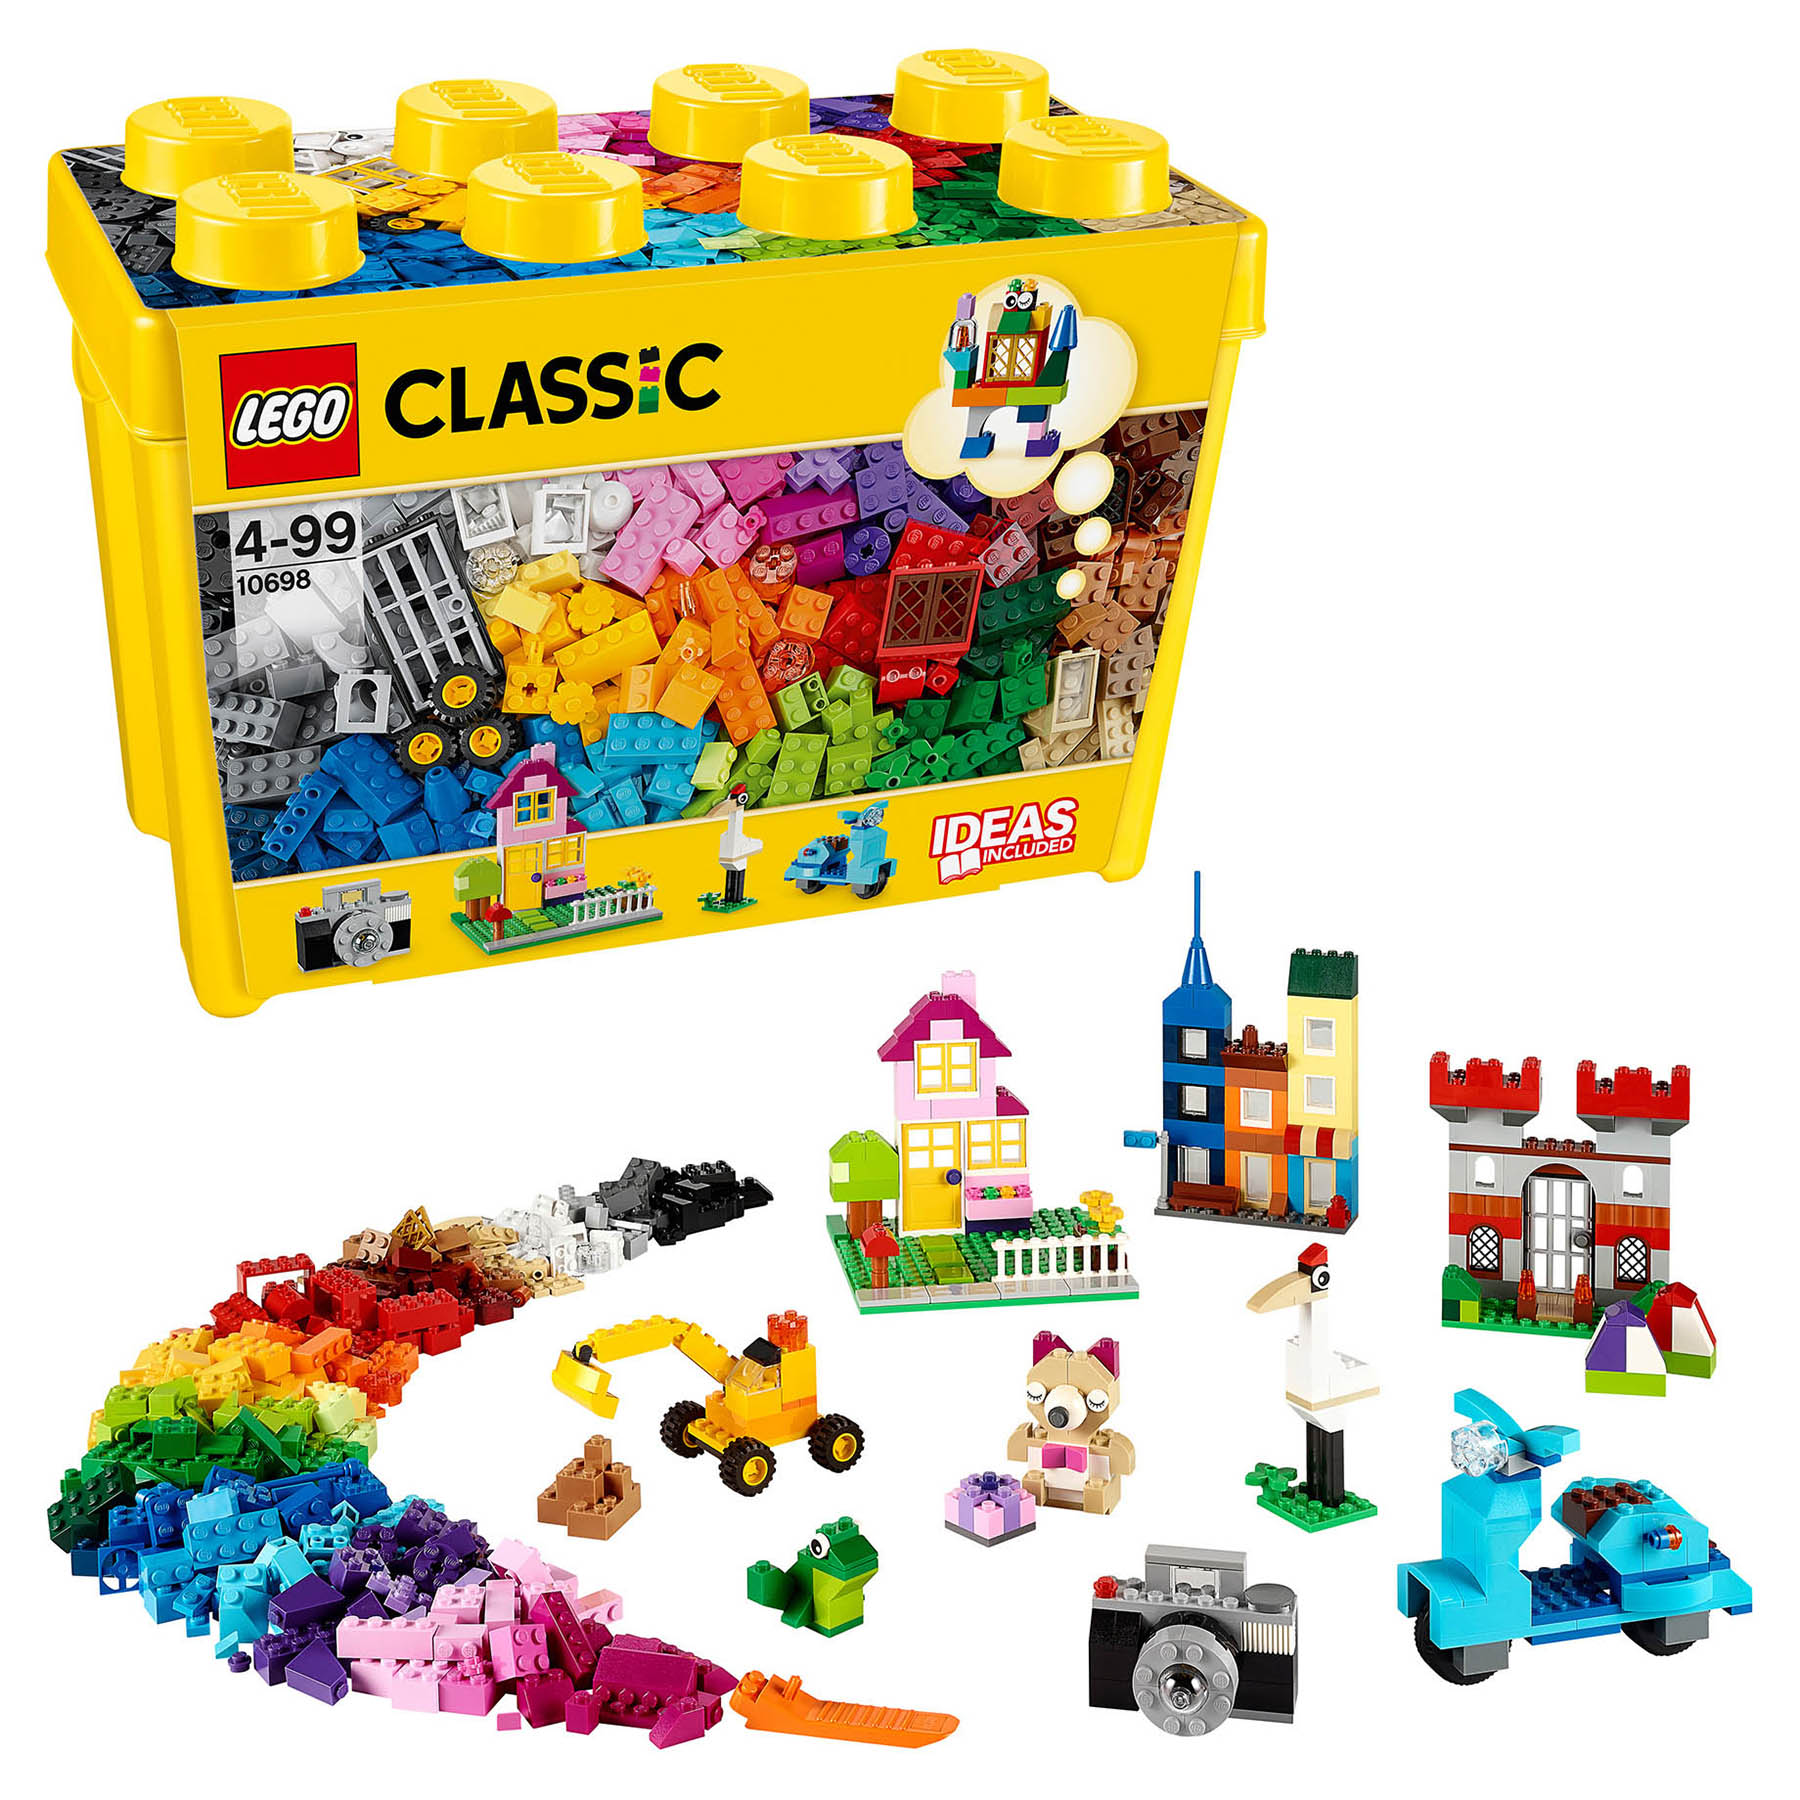 Designer <font><b>Lego</b></font> <font><b>classic</b></font> <font><b>10698</b></font> set for creativity large size image